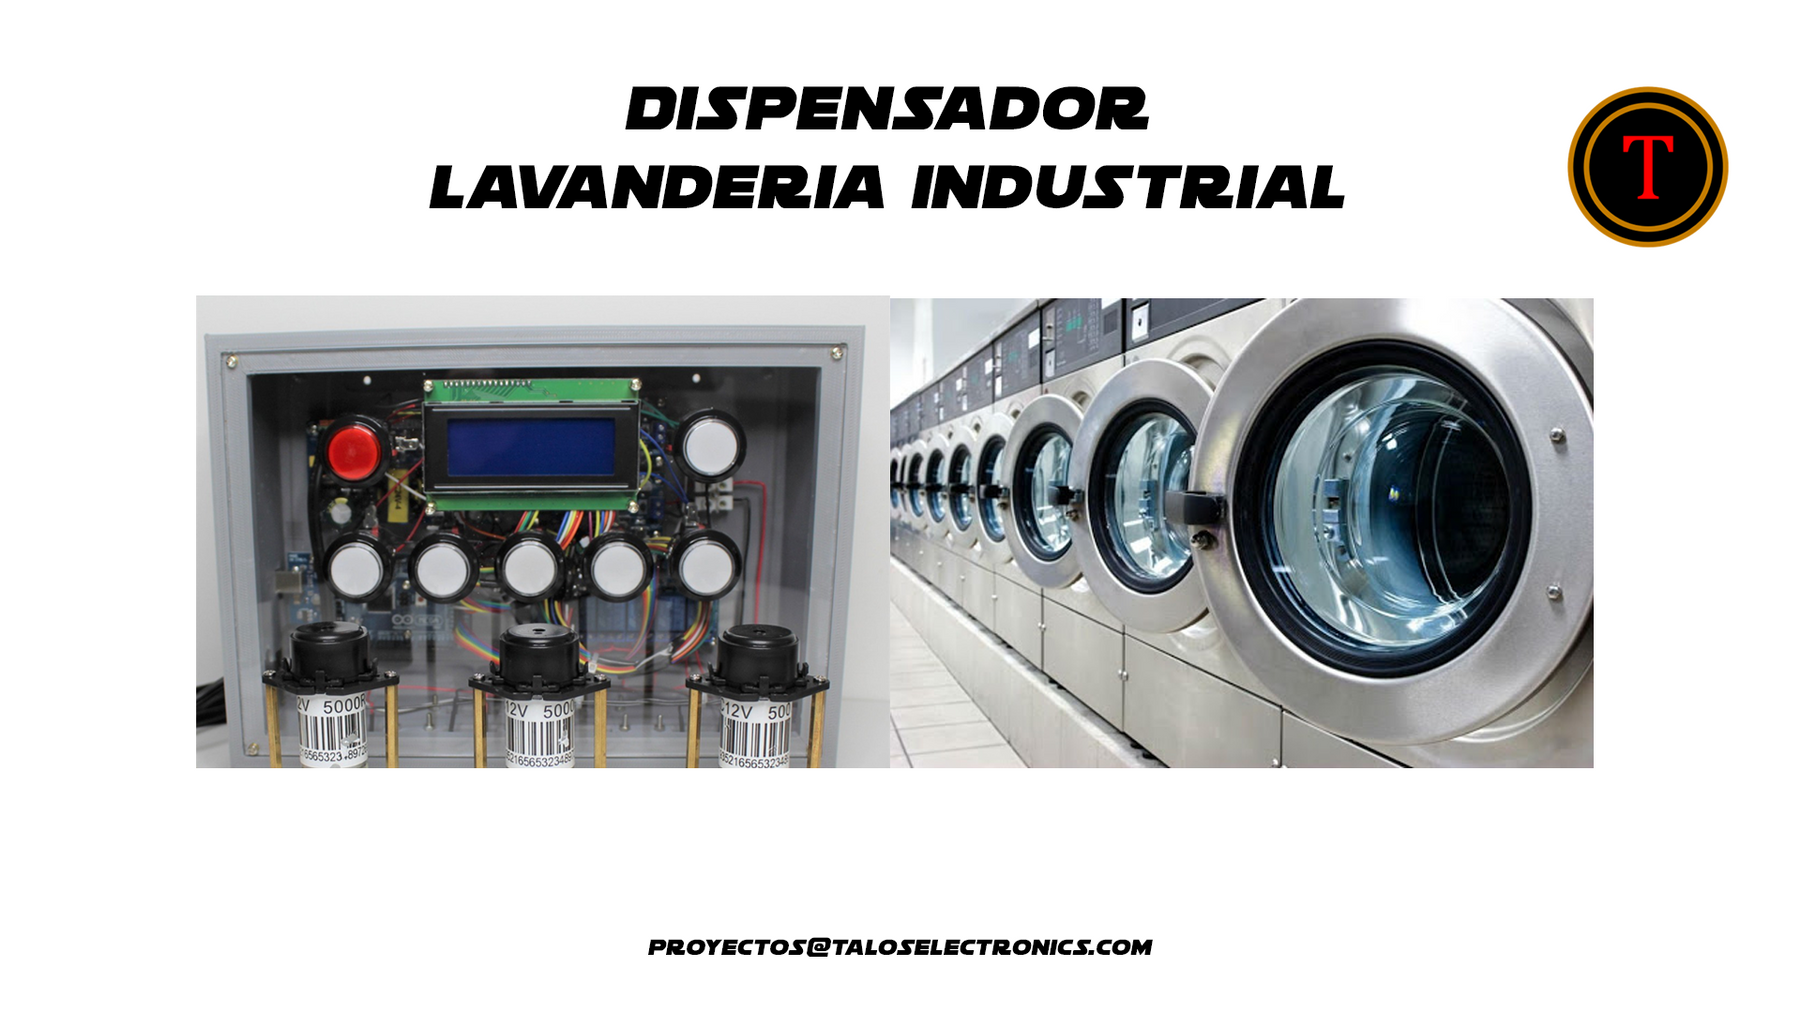 Dispensador lavandería industrial